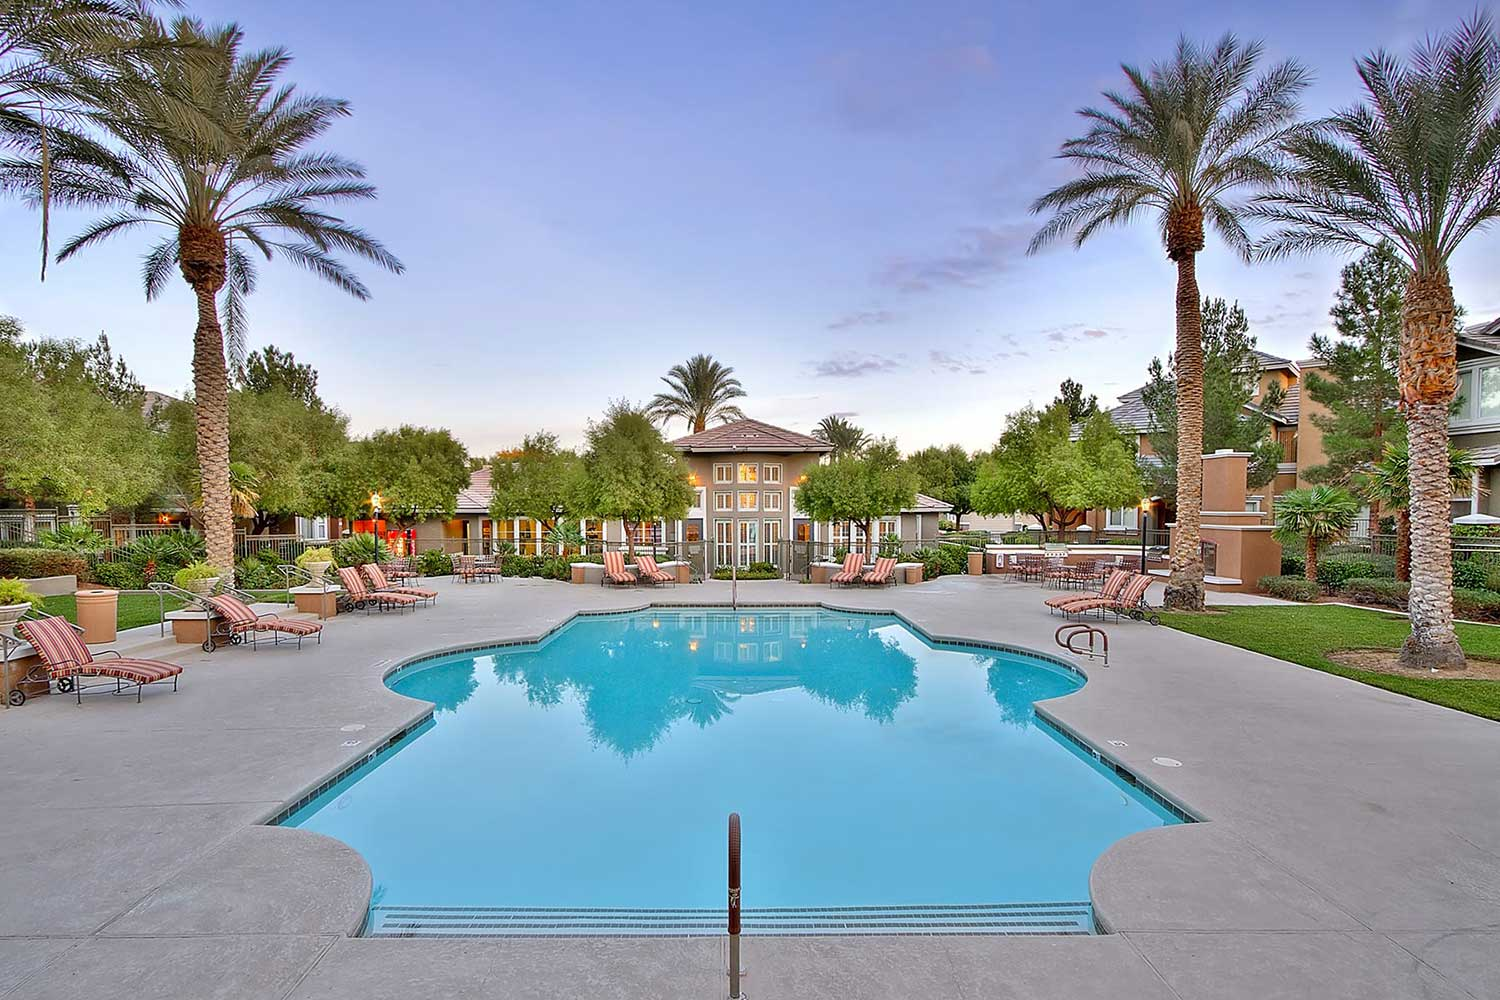 Tuscany's pool courtyard ringed with palm trees and comfortable lounge furniture.